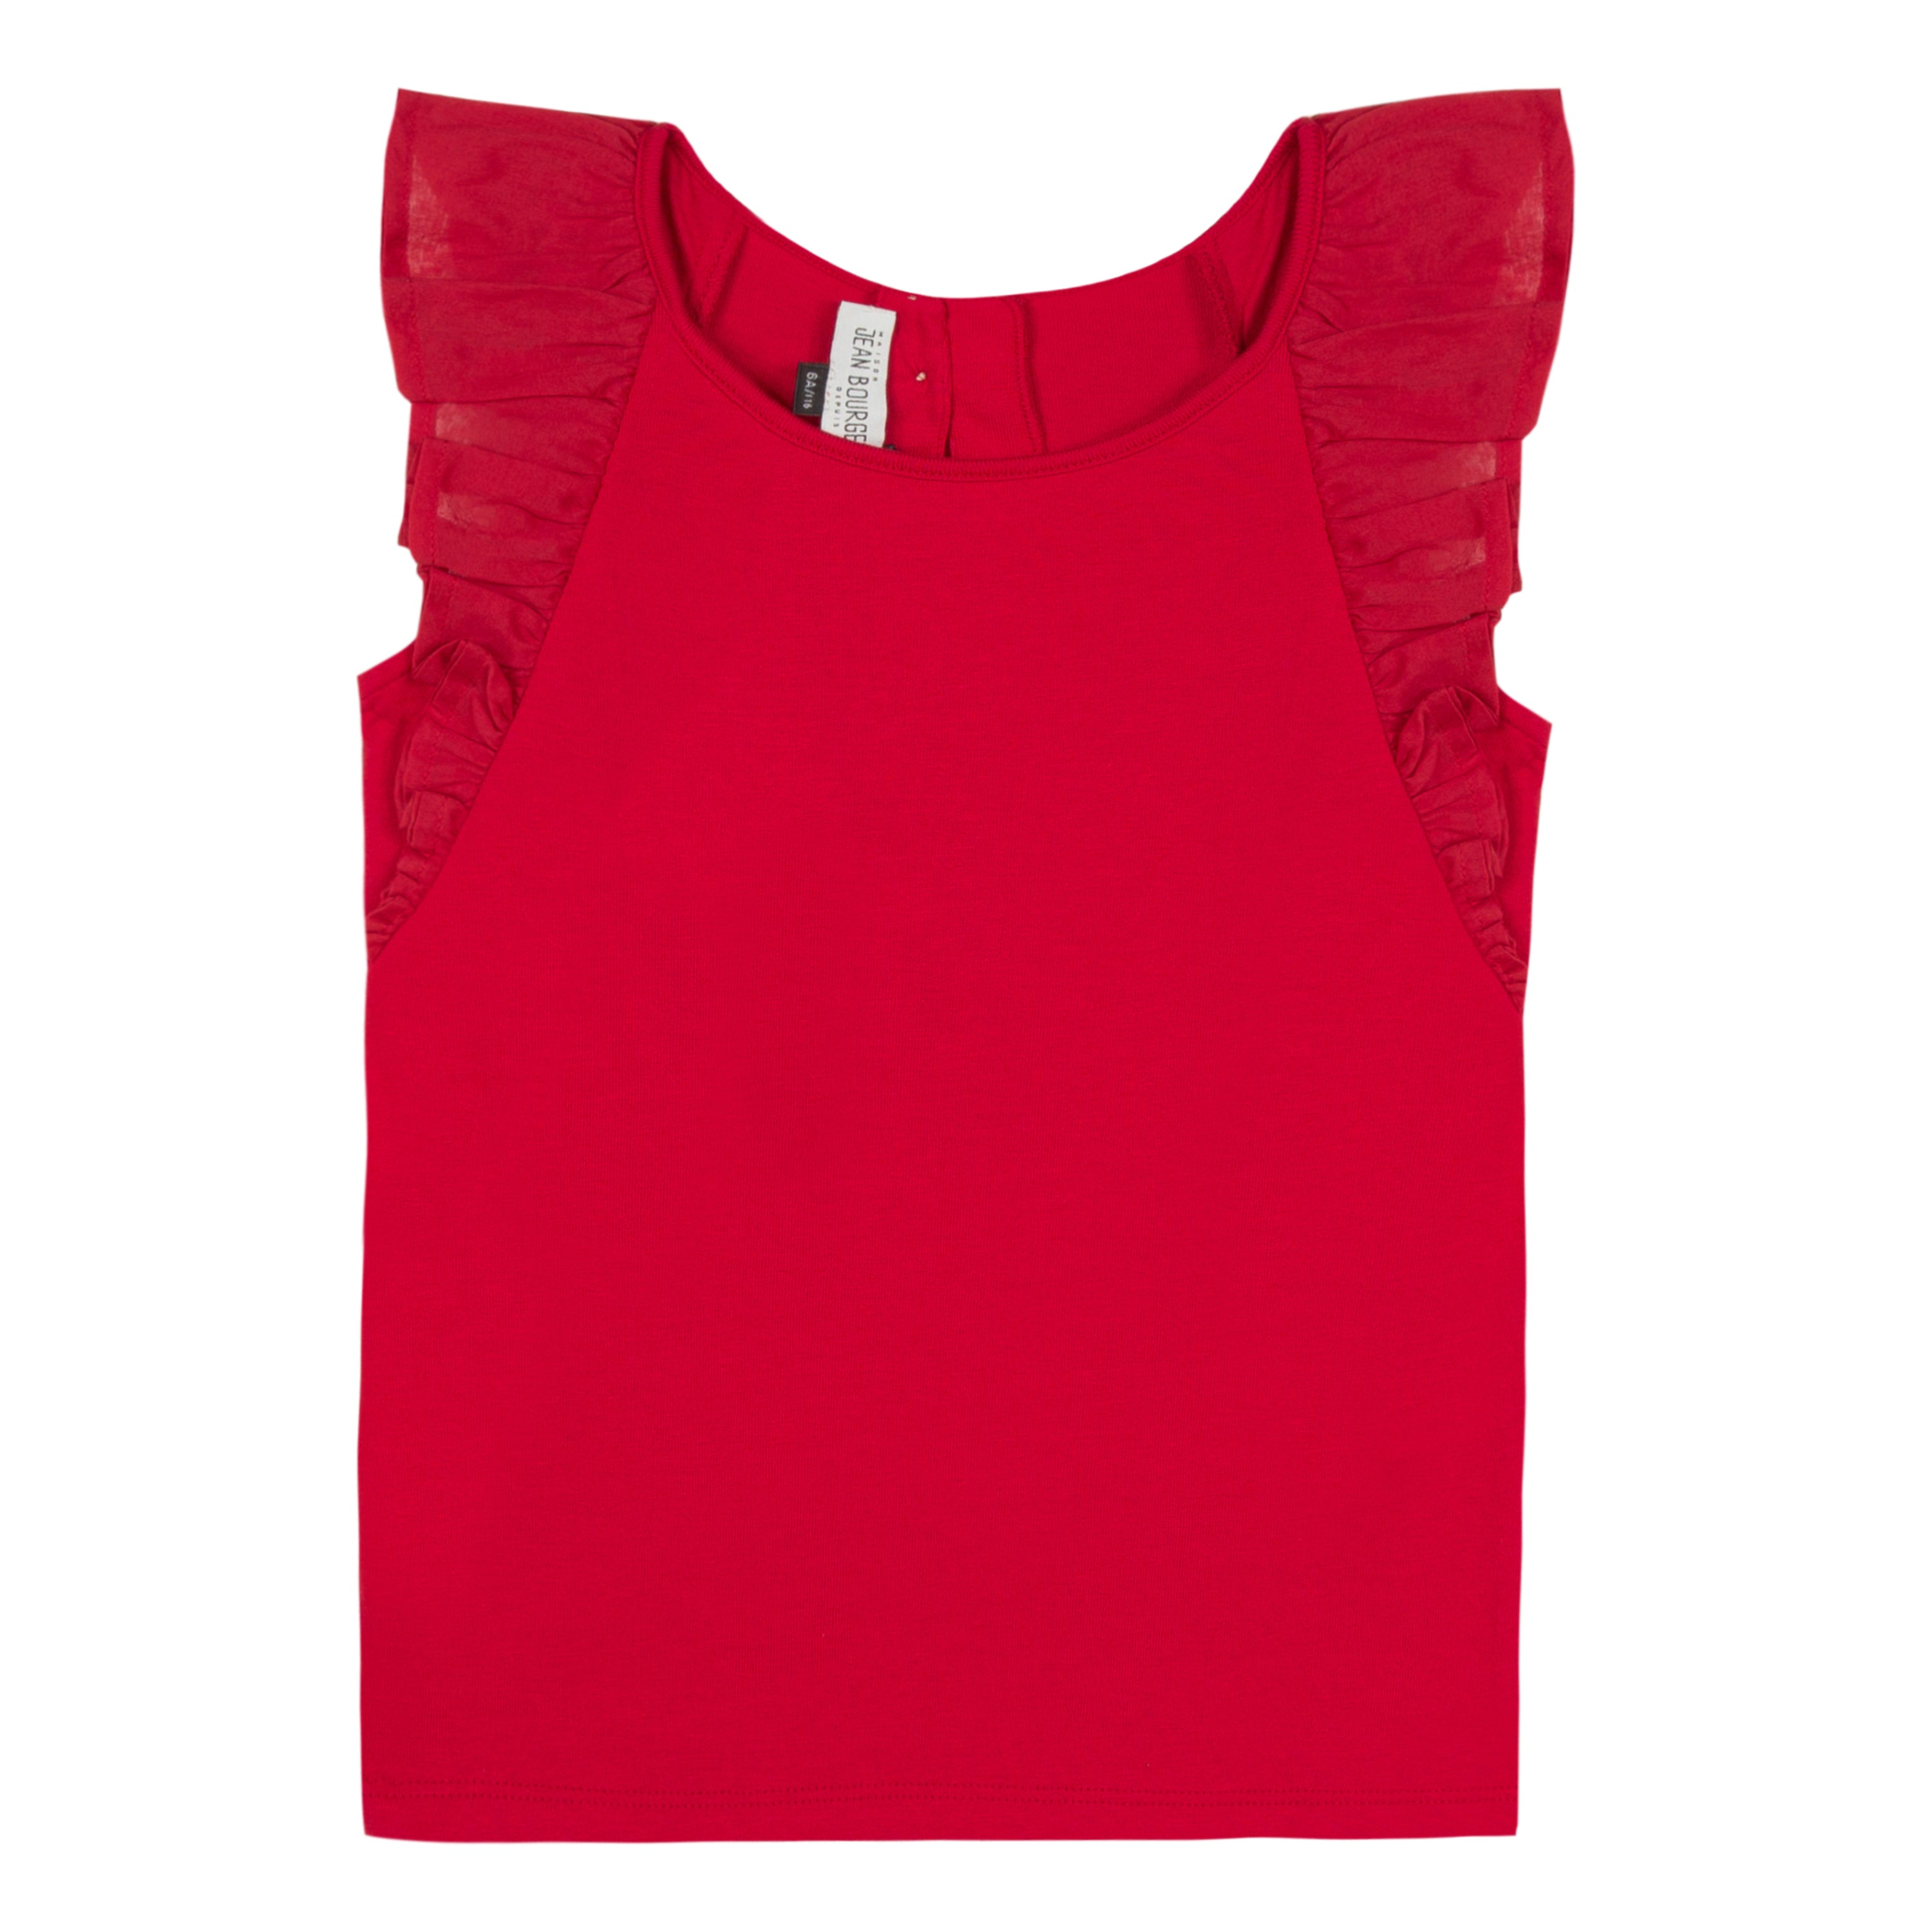 Girls Flounced Top Red Or White